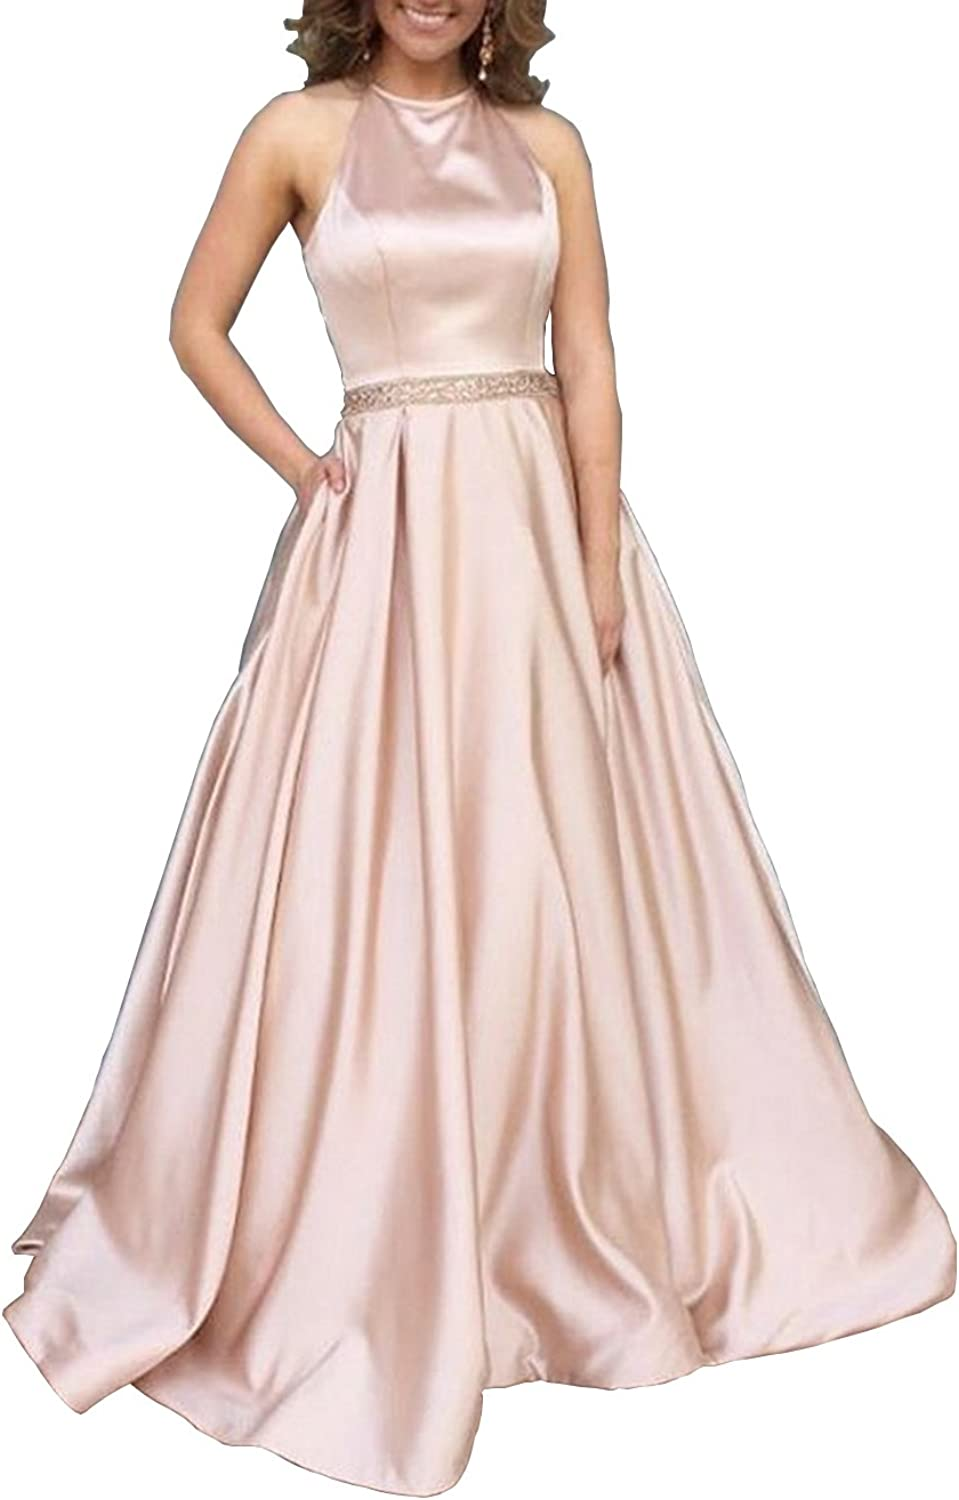 Women's Halter Aline Beaded Satin Long Formal Evening Gown Prom Dress with Pockets Size 10 pink gold